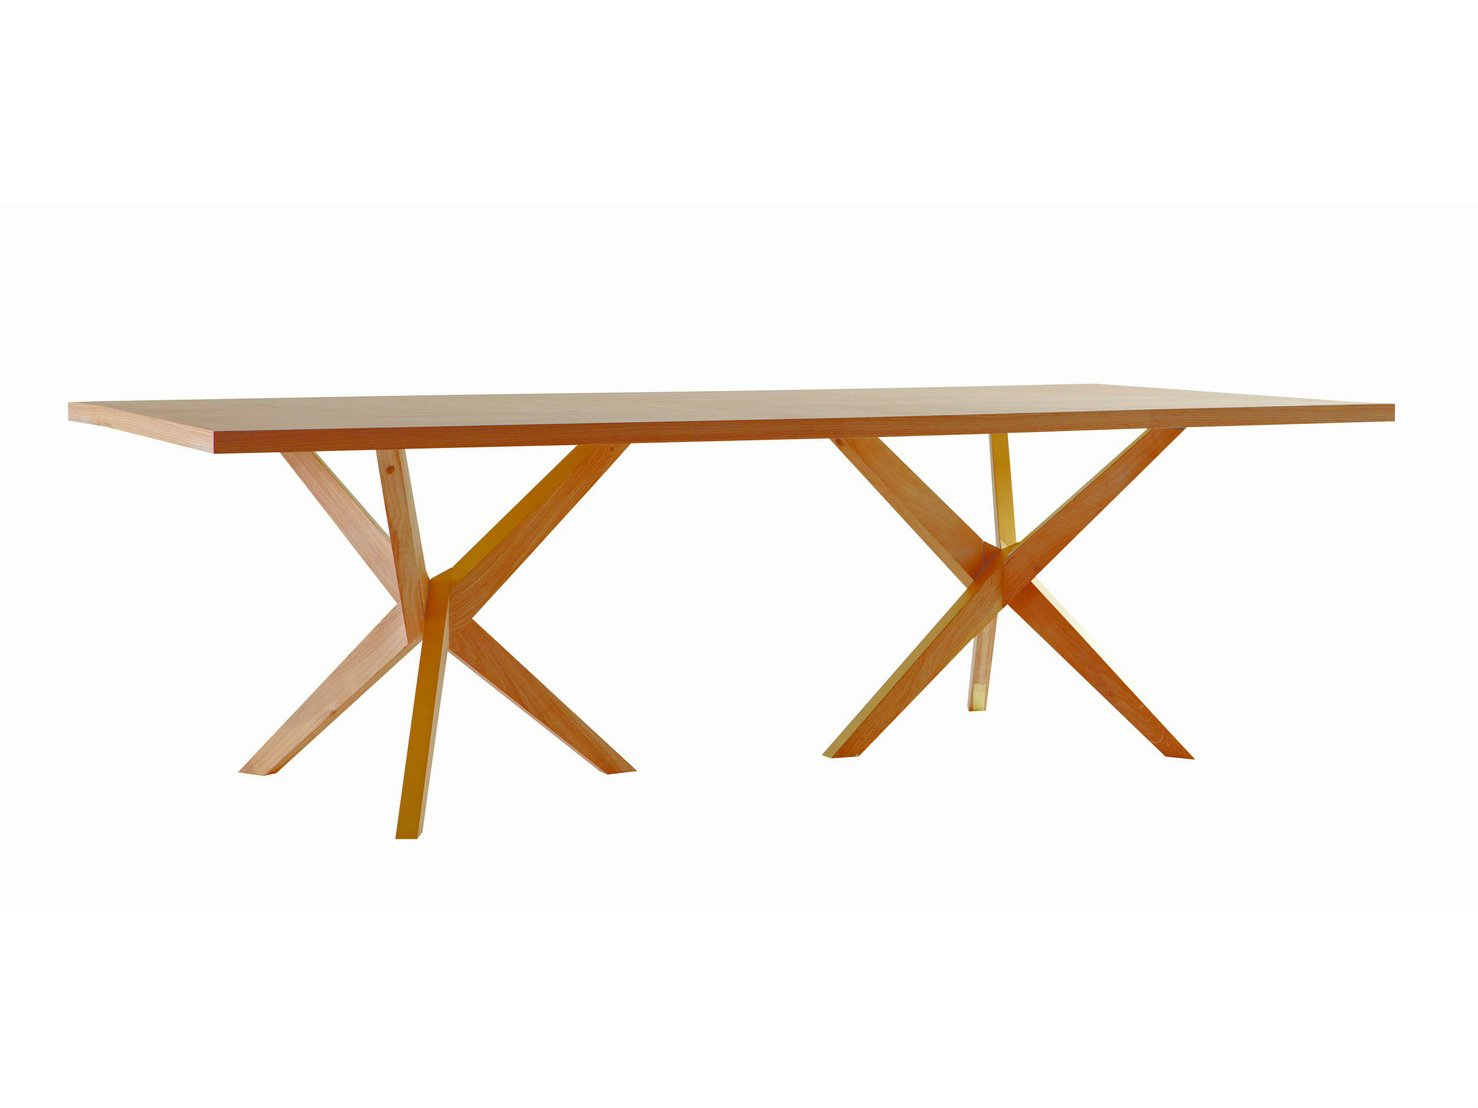 Rectangular wooden table jane by roche bobois design - Table ovale marbre roche bobois ...